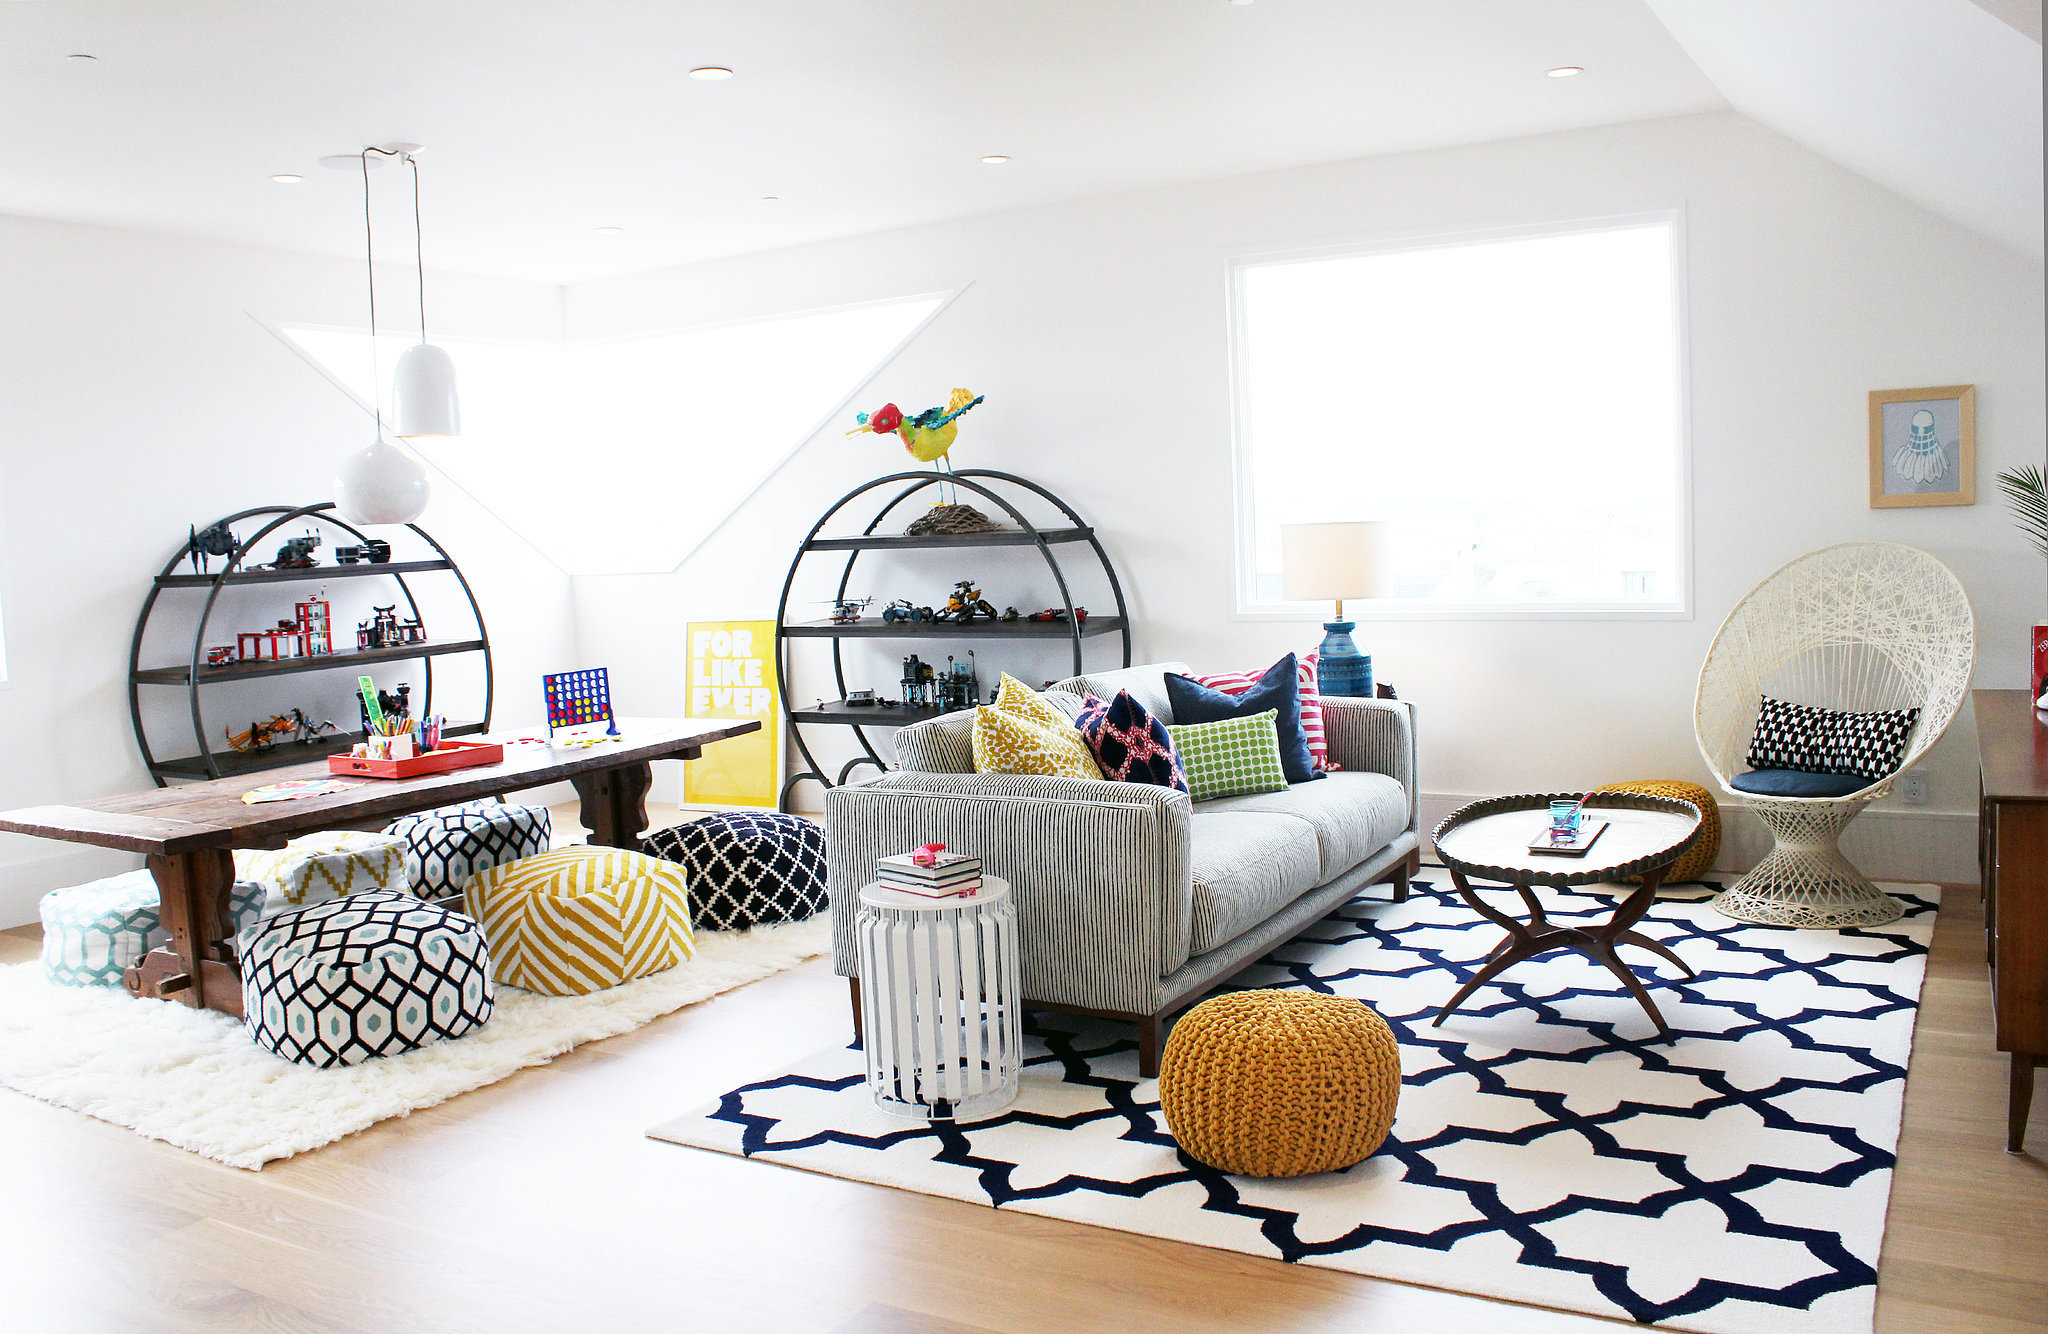 Online home decorating services popsugar home for The interior designer